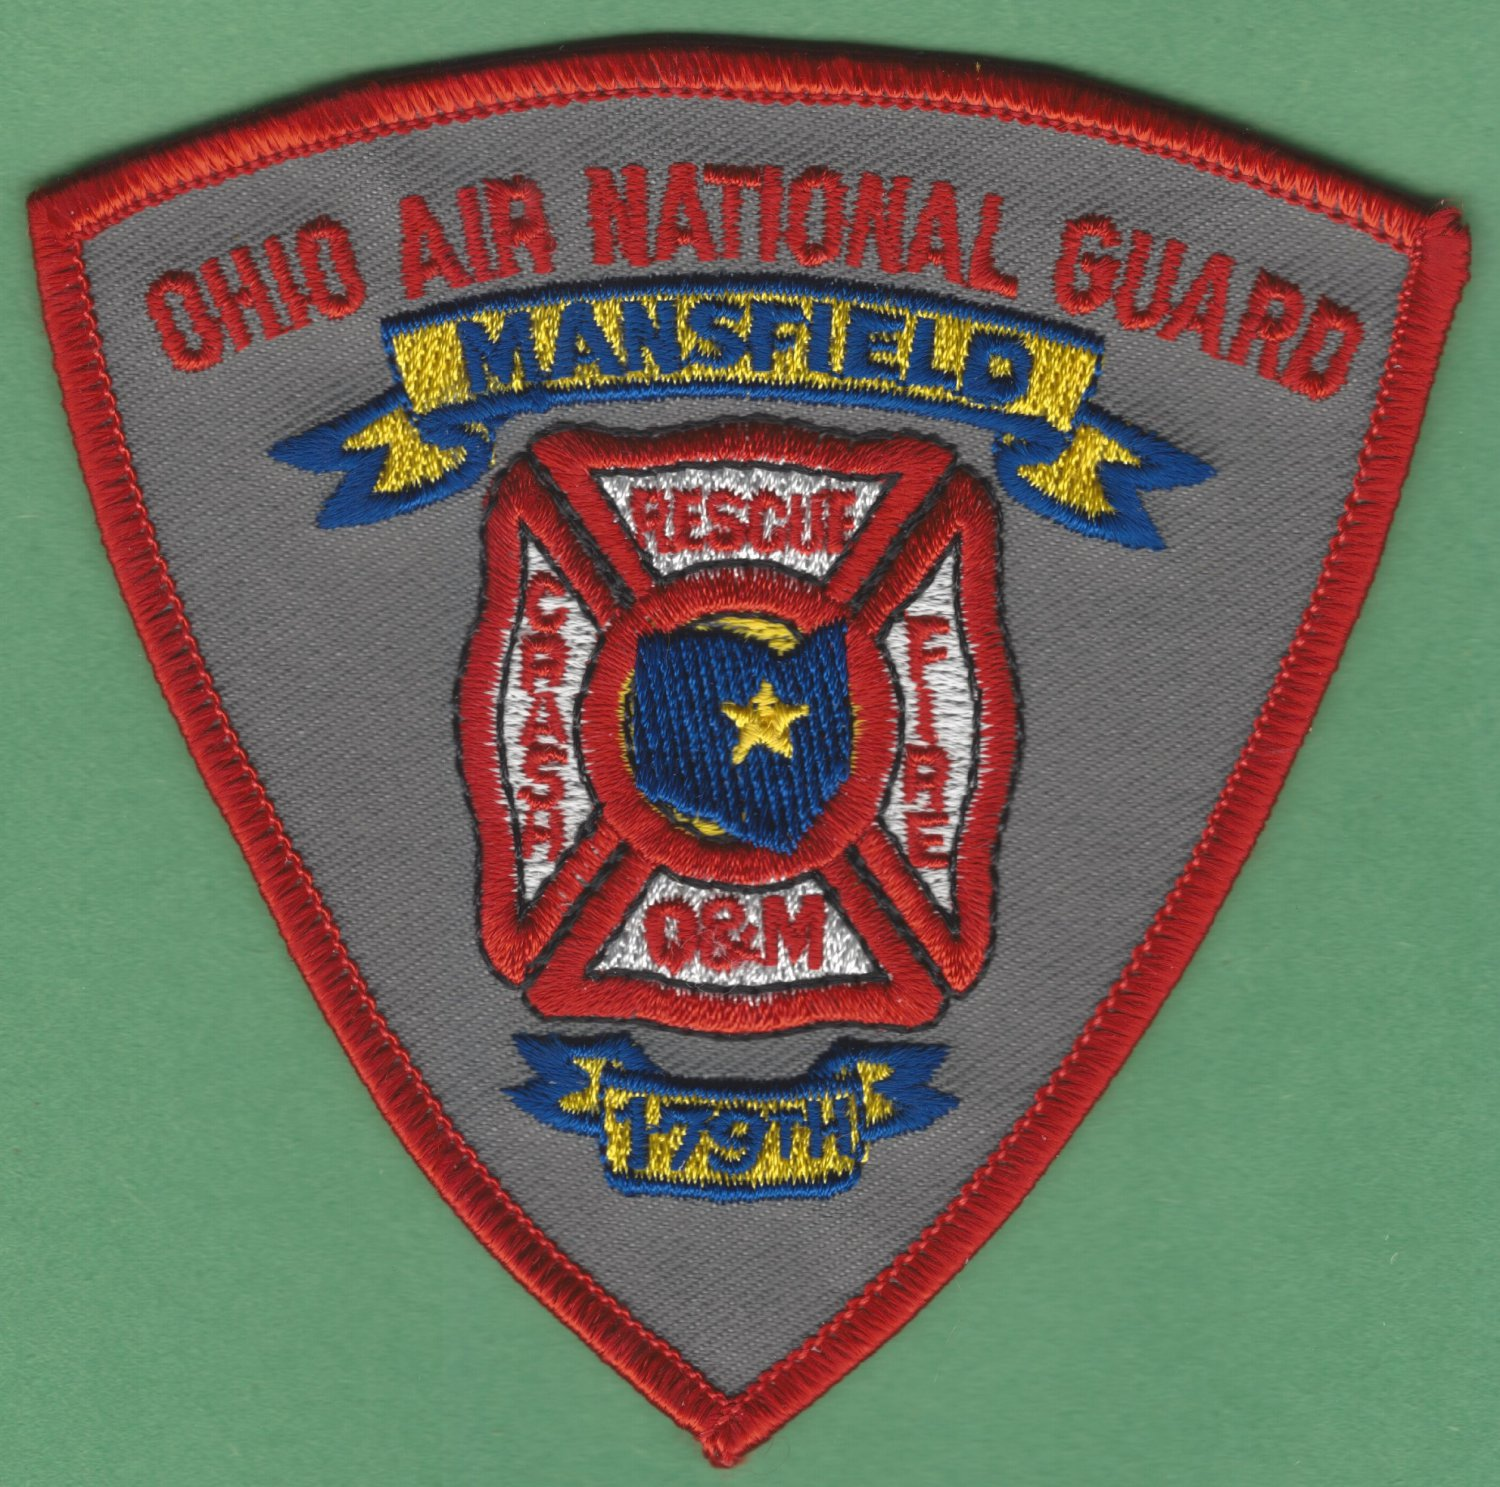 OHIO 179TH AIR NATIONAL GUARD BASE FIRE RESCUE PATCH